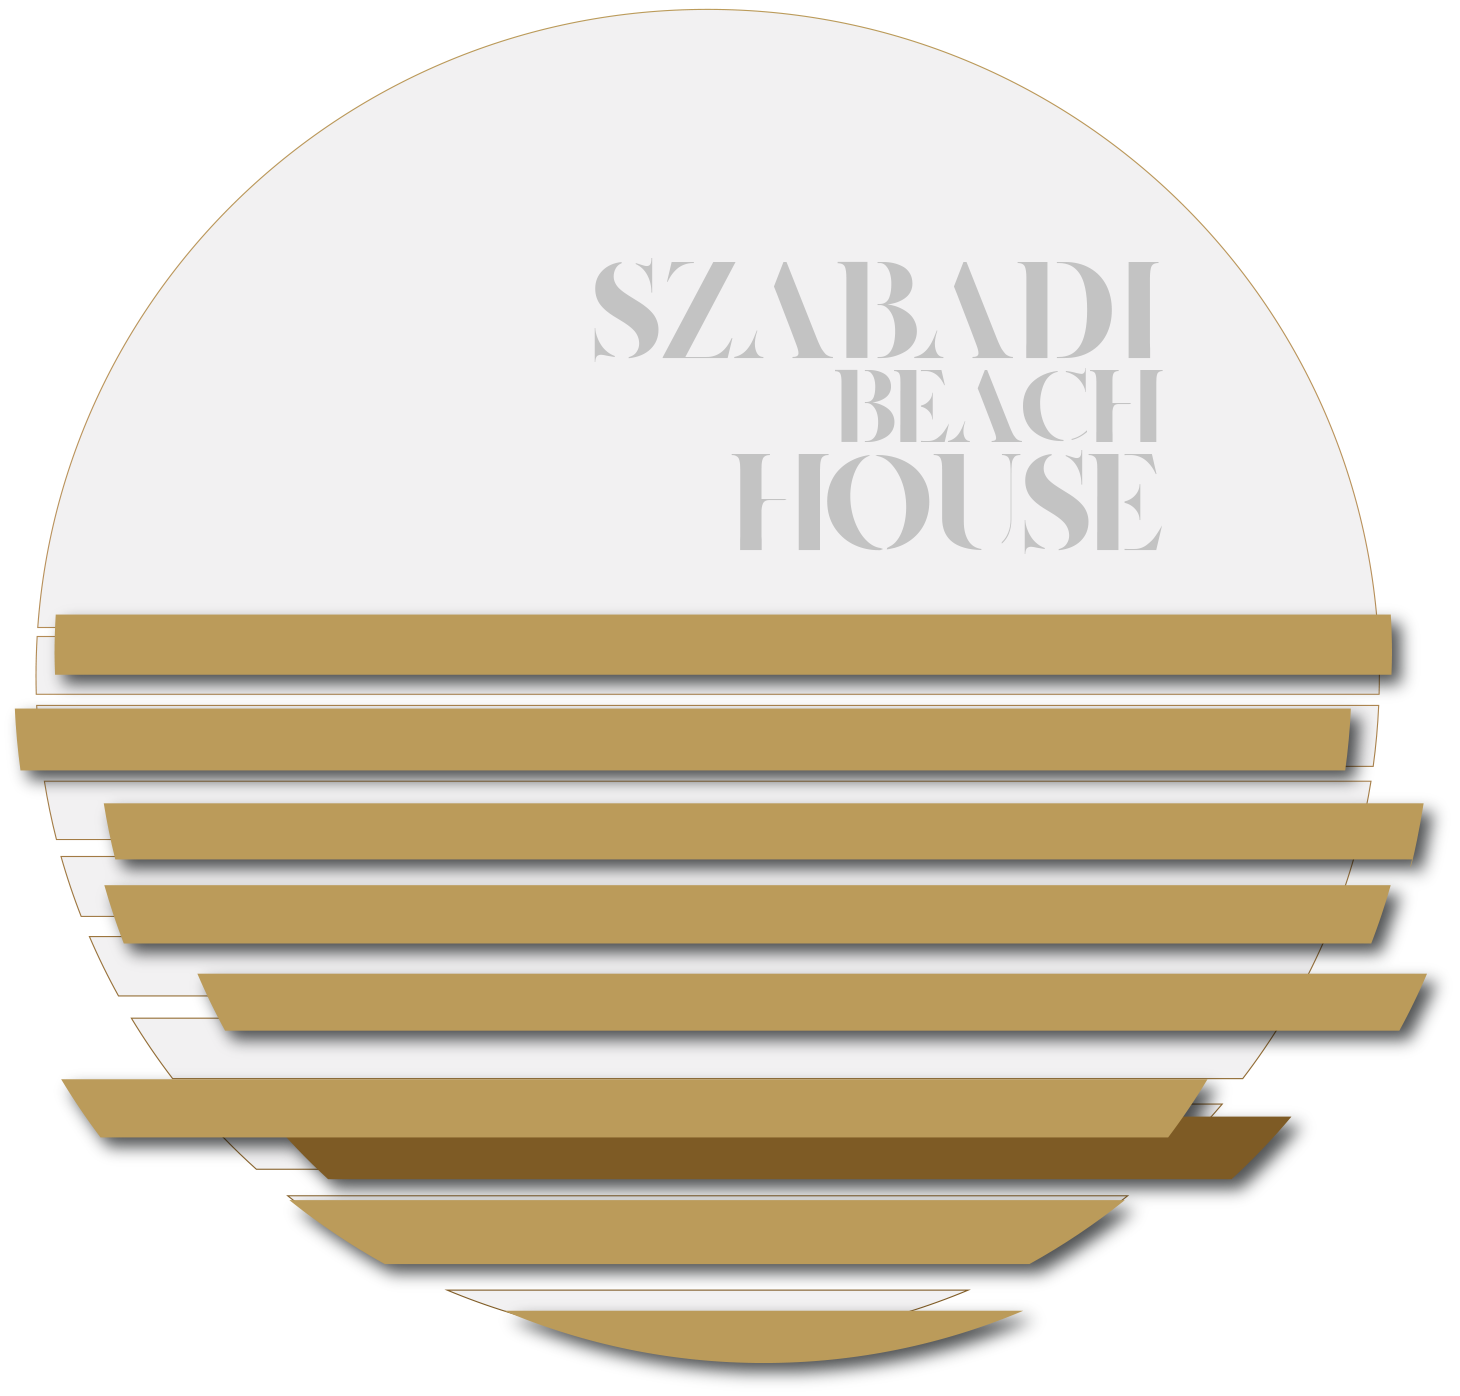 Szabadi Beach House